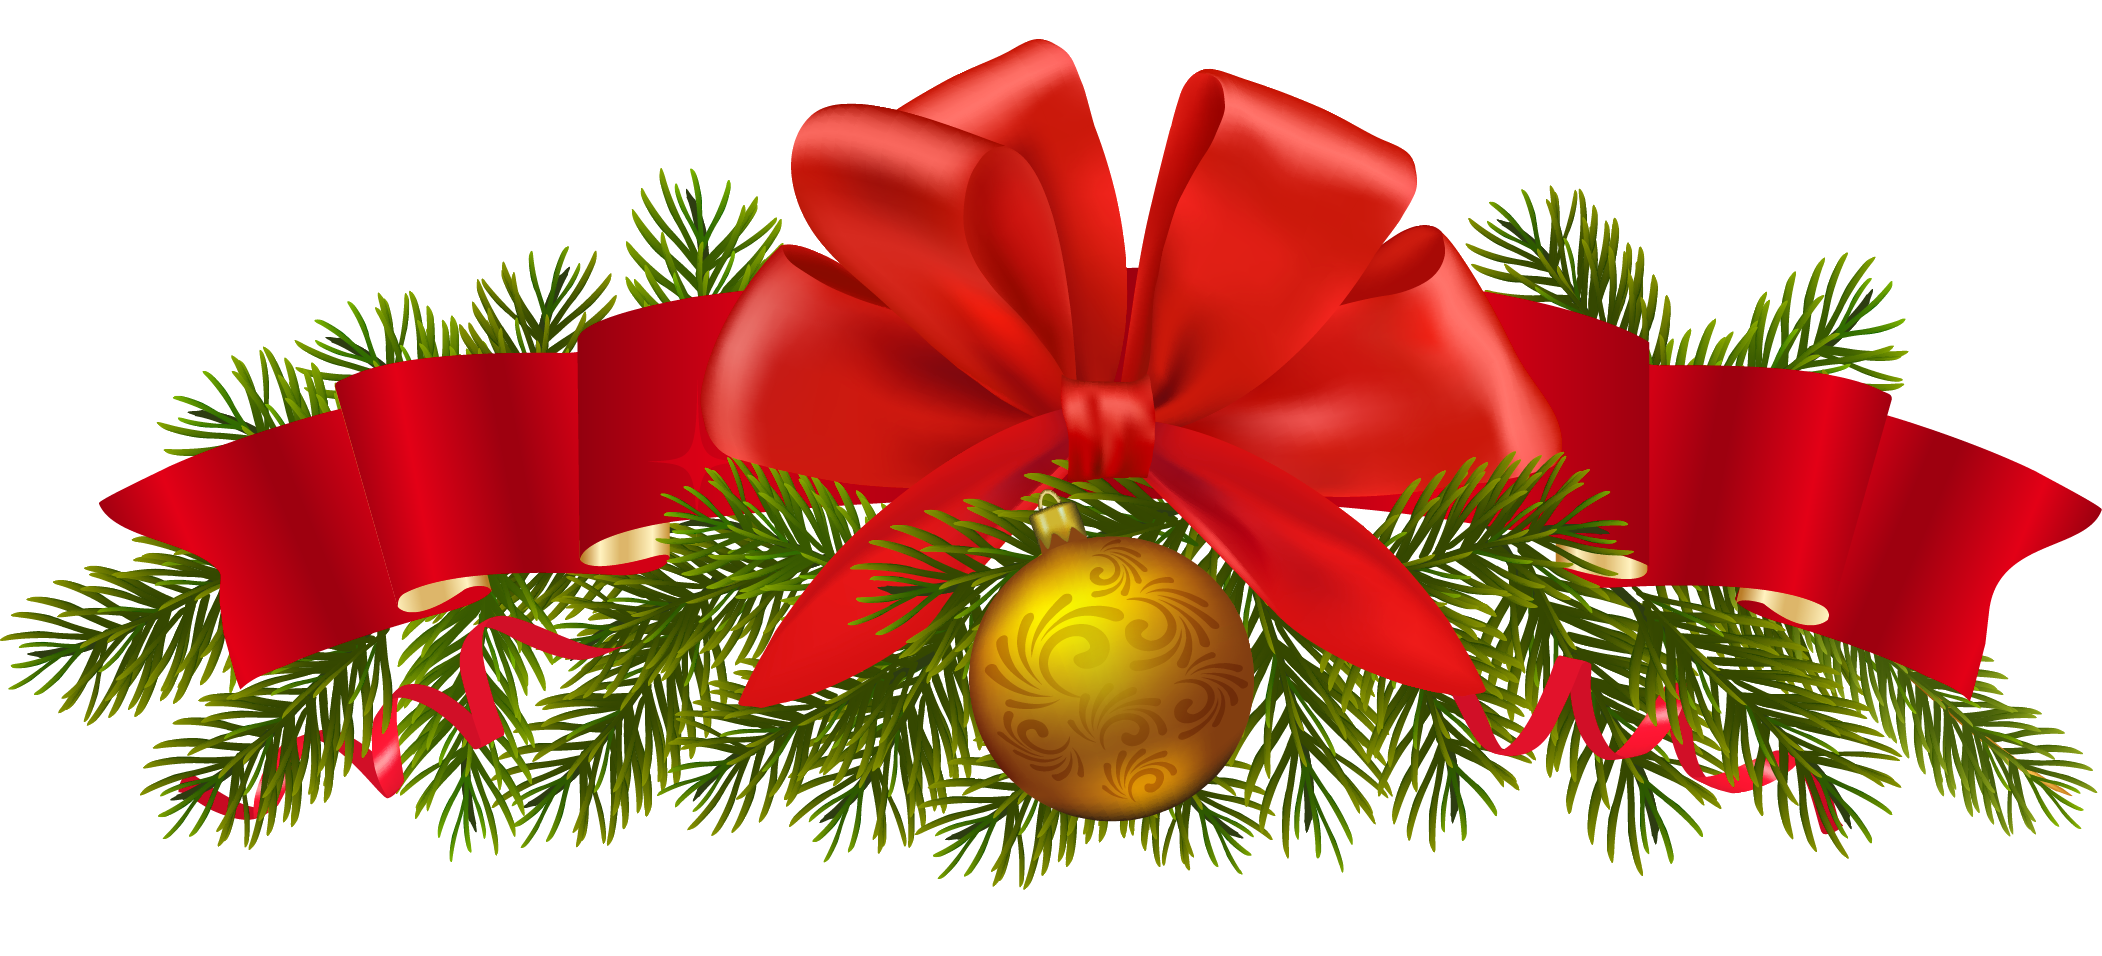 Focus on the holidays clipart high res png image download Free Christmas Decorations Cliparts, Download Free Clip Art, Free ... image download